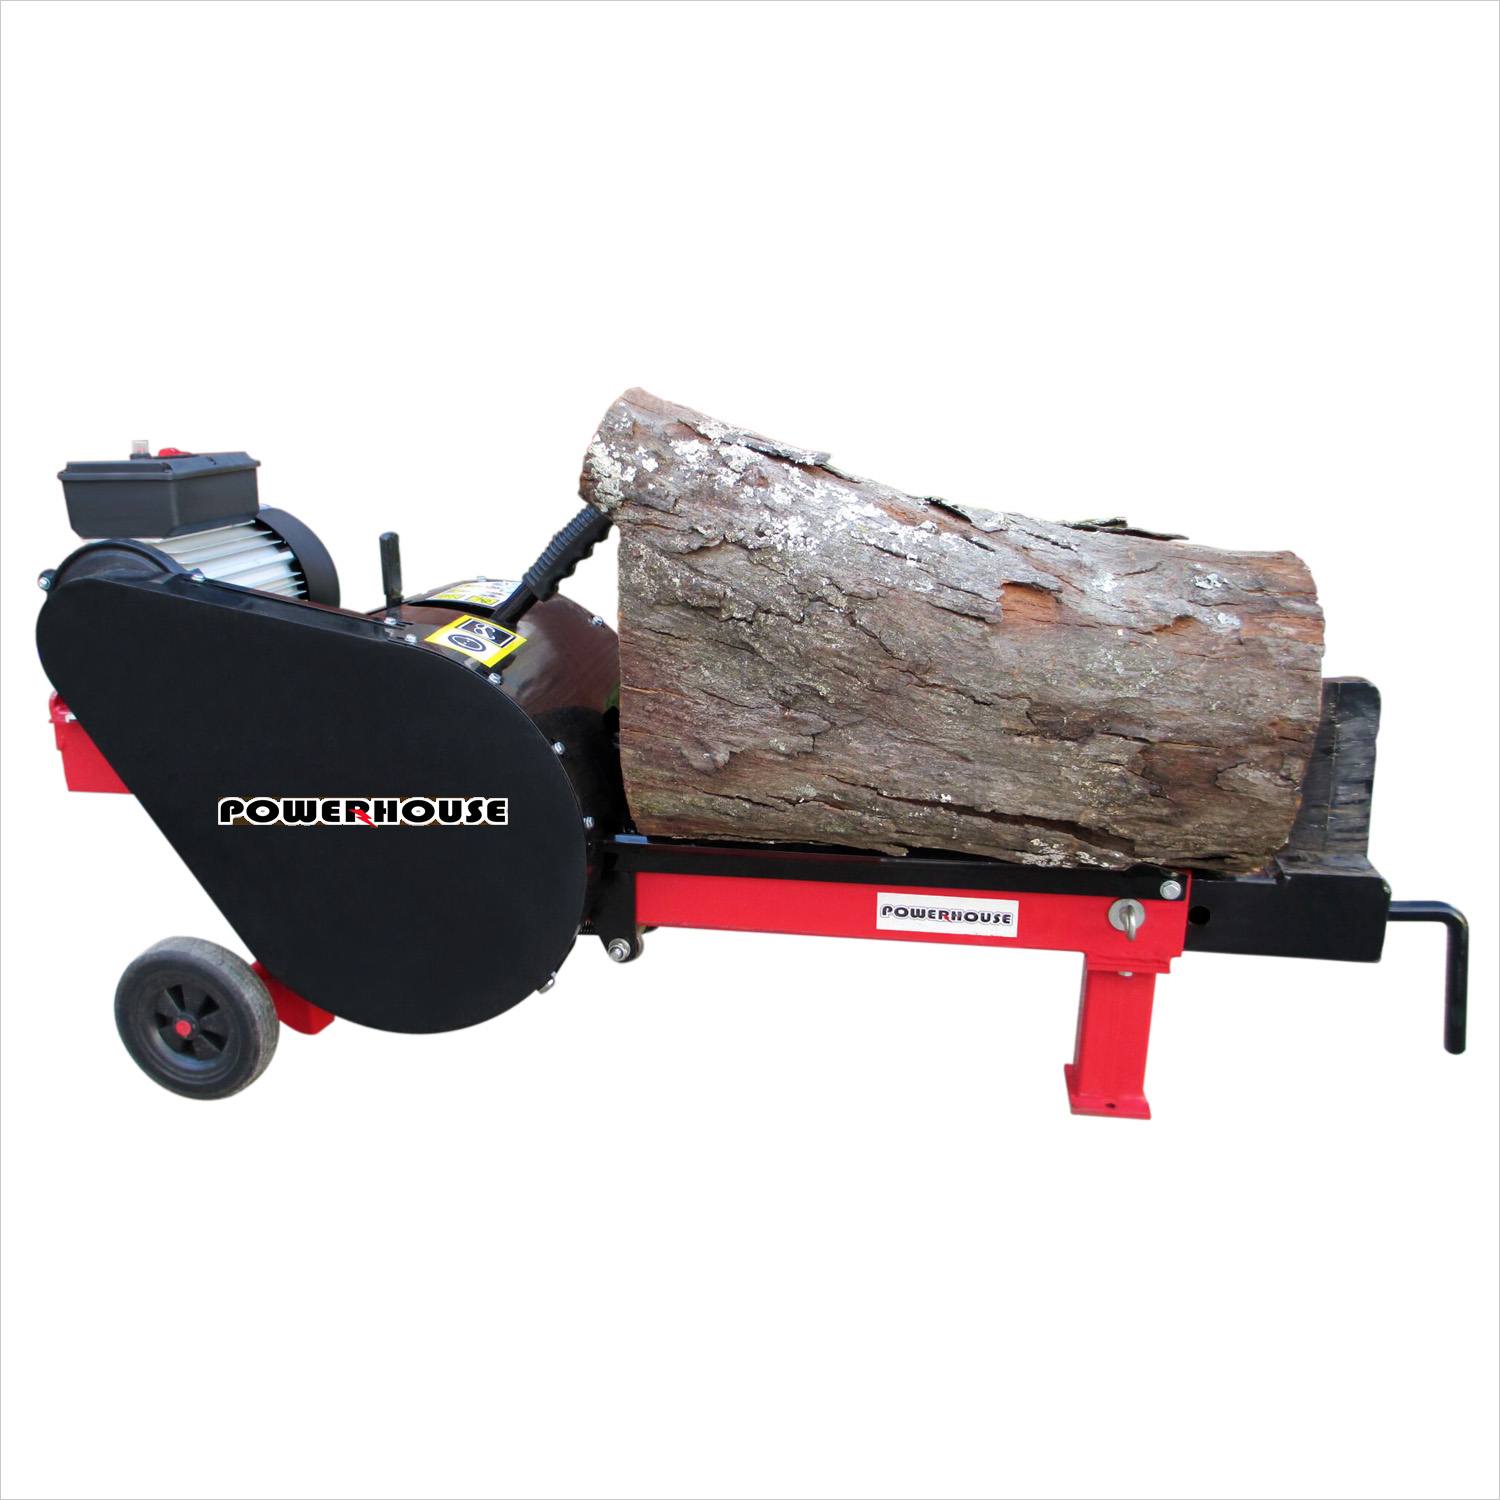 XM-680 Powerhouse 12-Ton Kinetic Log Splitter by Powerhouse